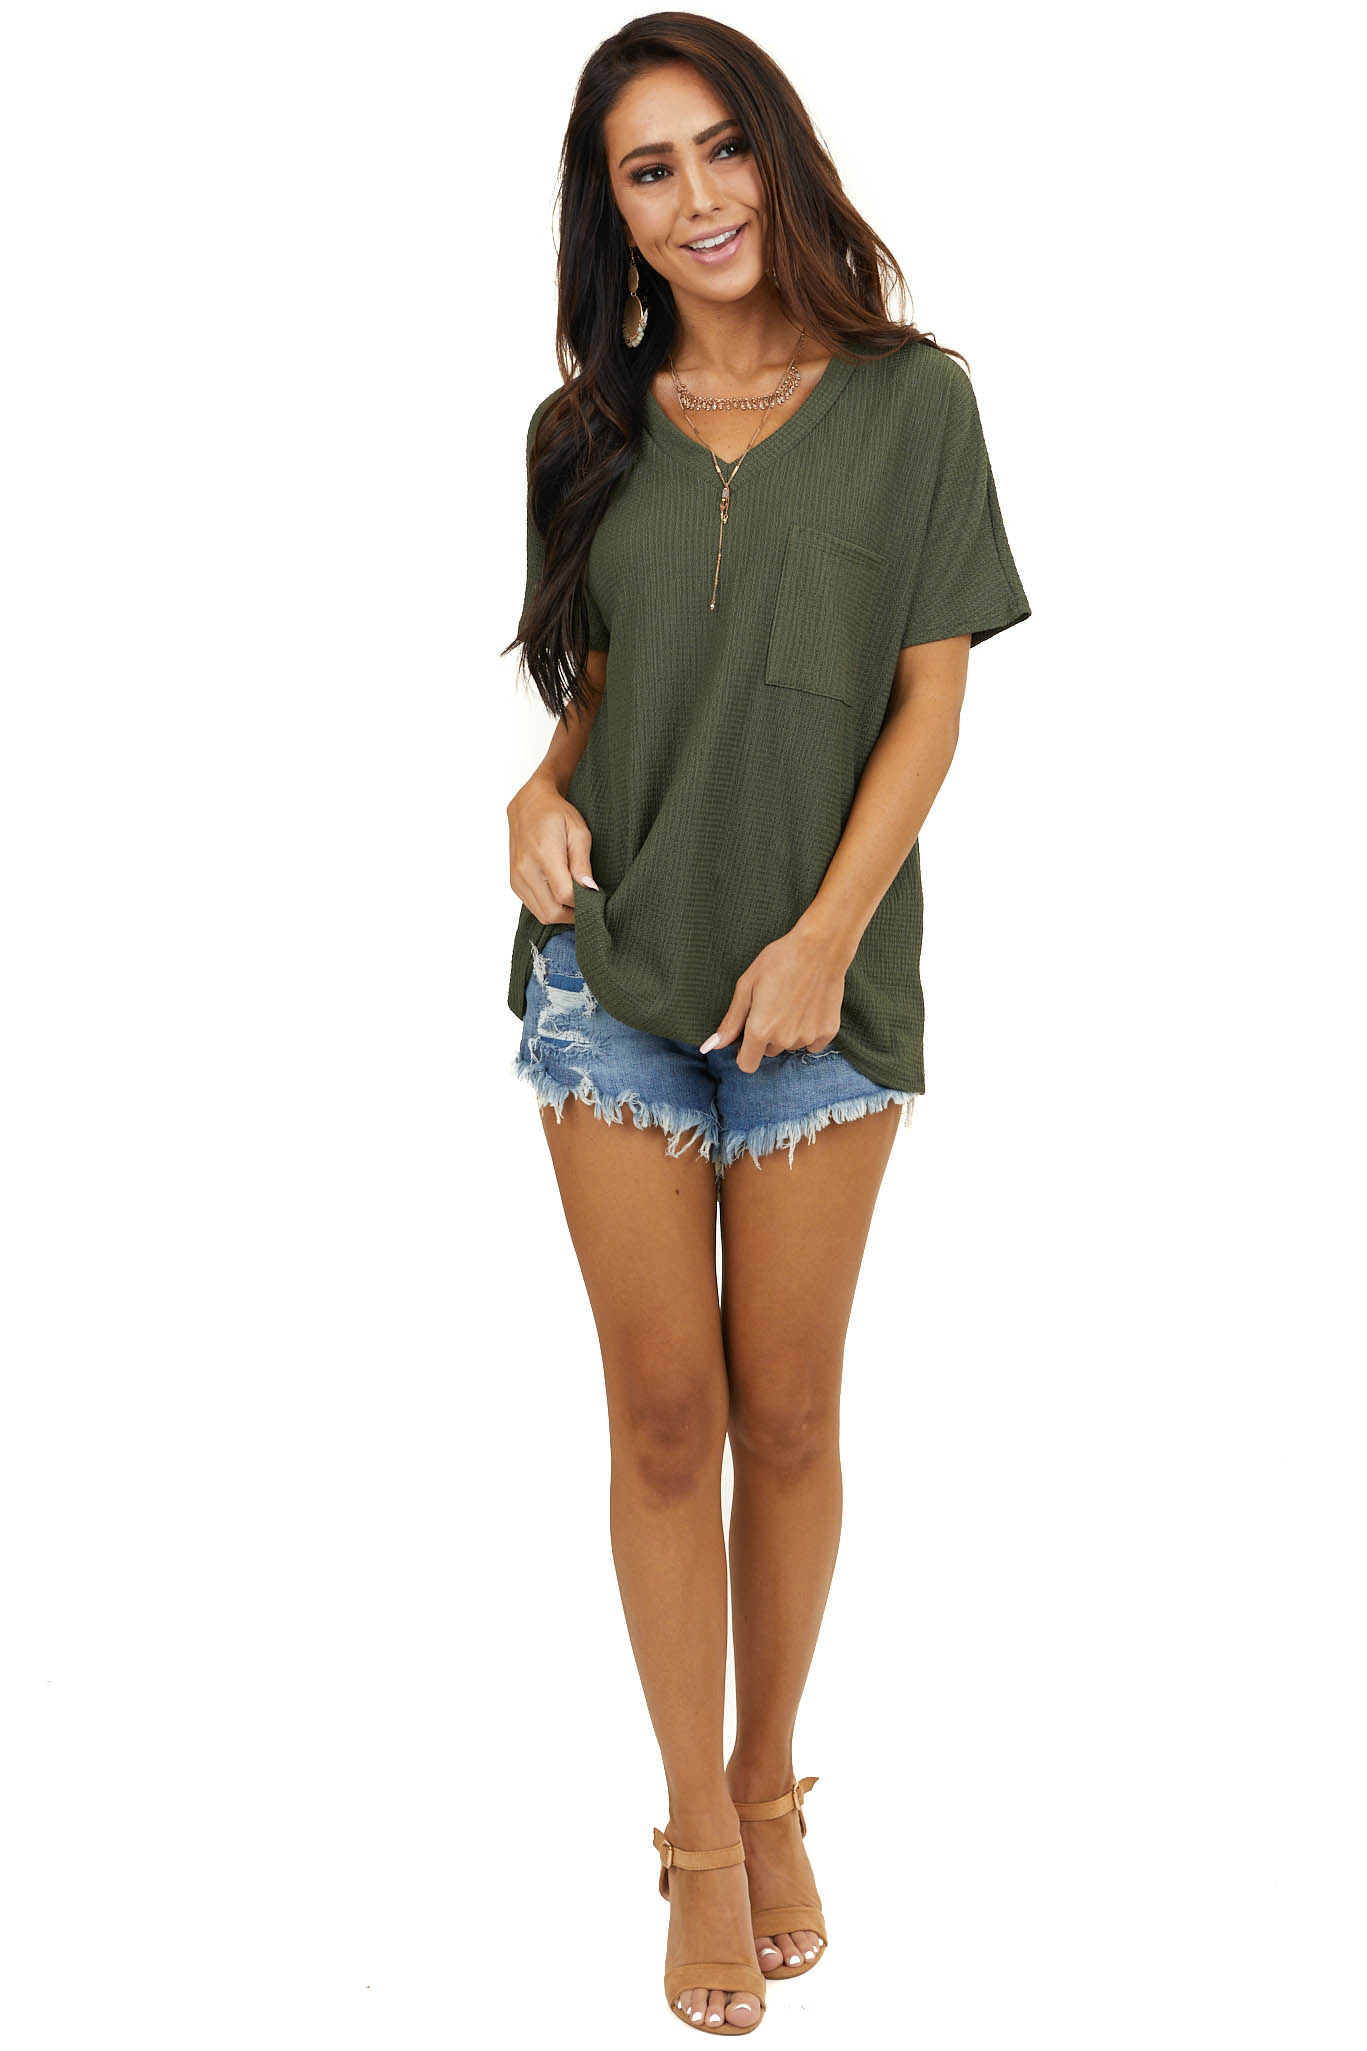 Forest Green V Neck Top with Short Sleeves and Front Pocket